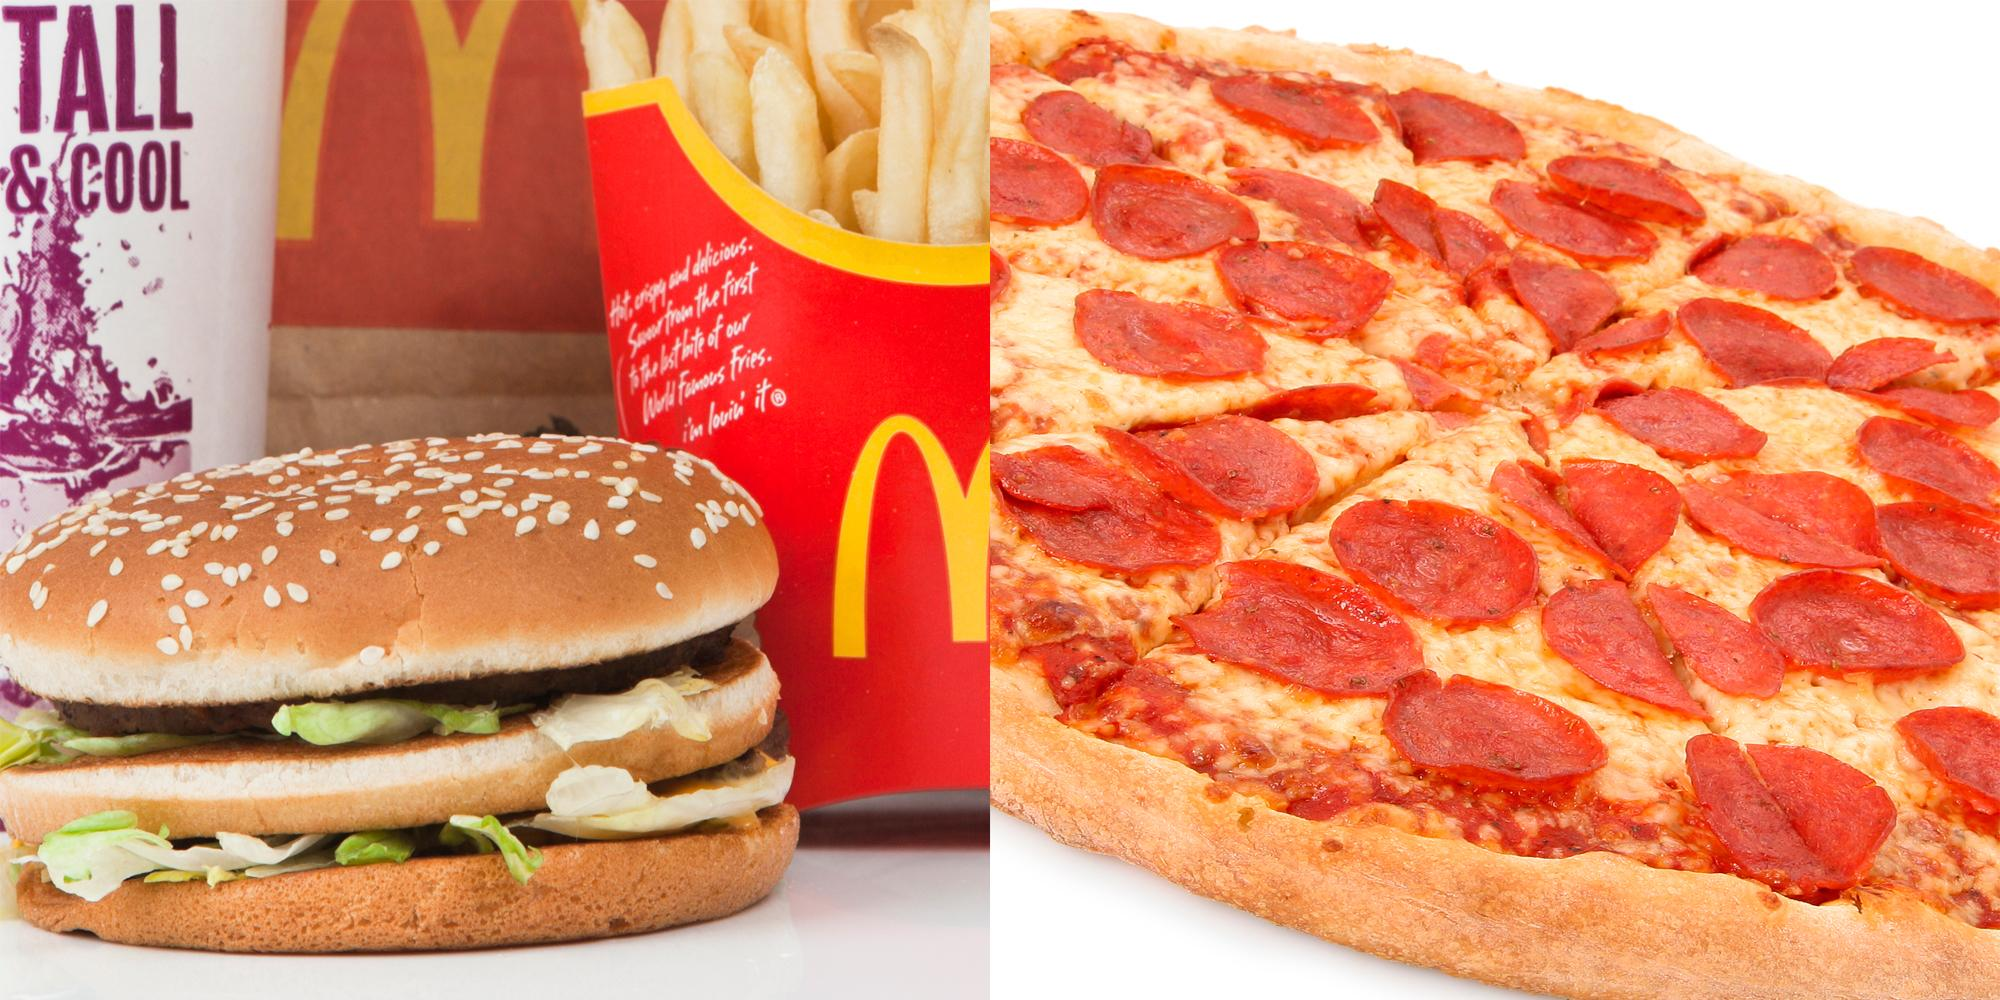 The real difference between British and American fast food, according to Americans